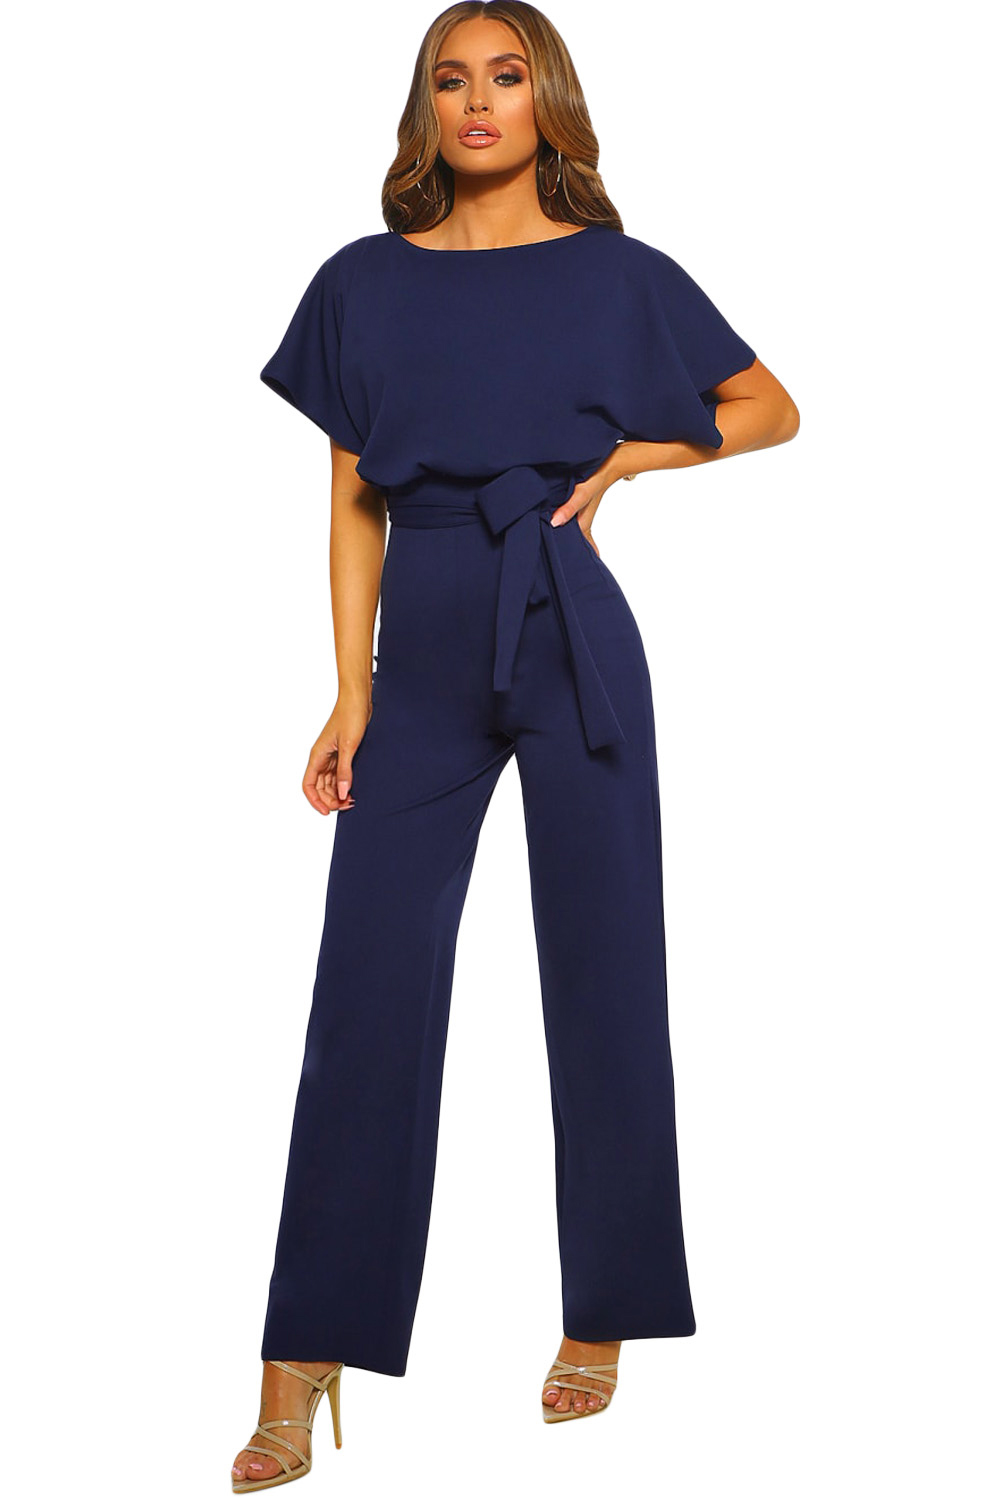 9d716adf83d US  8.6 - Blue Oh So Glam Belted Wide Leg Jumpsuit - www.jnbwholesale.com